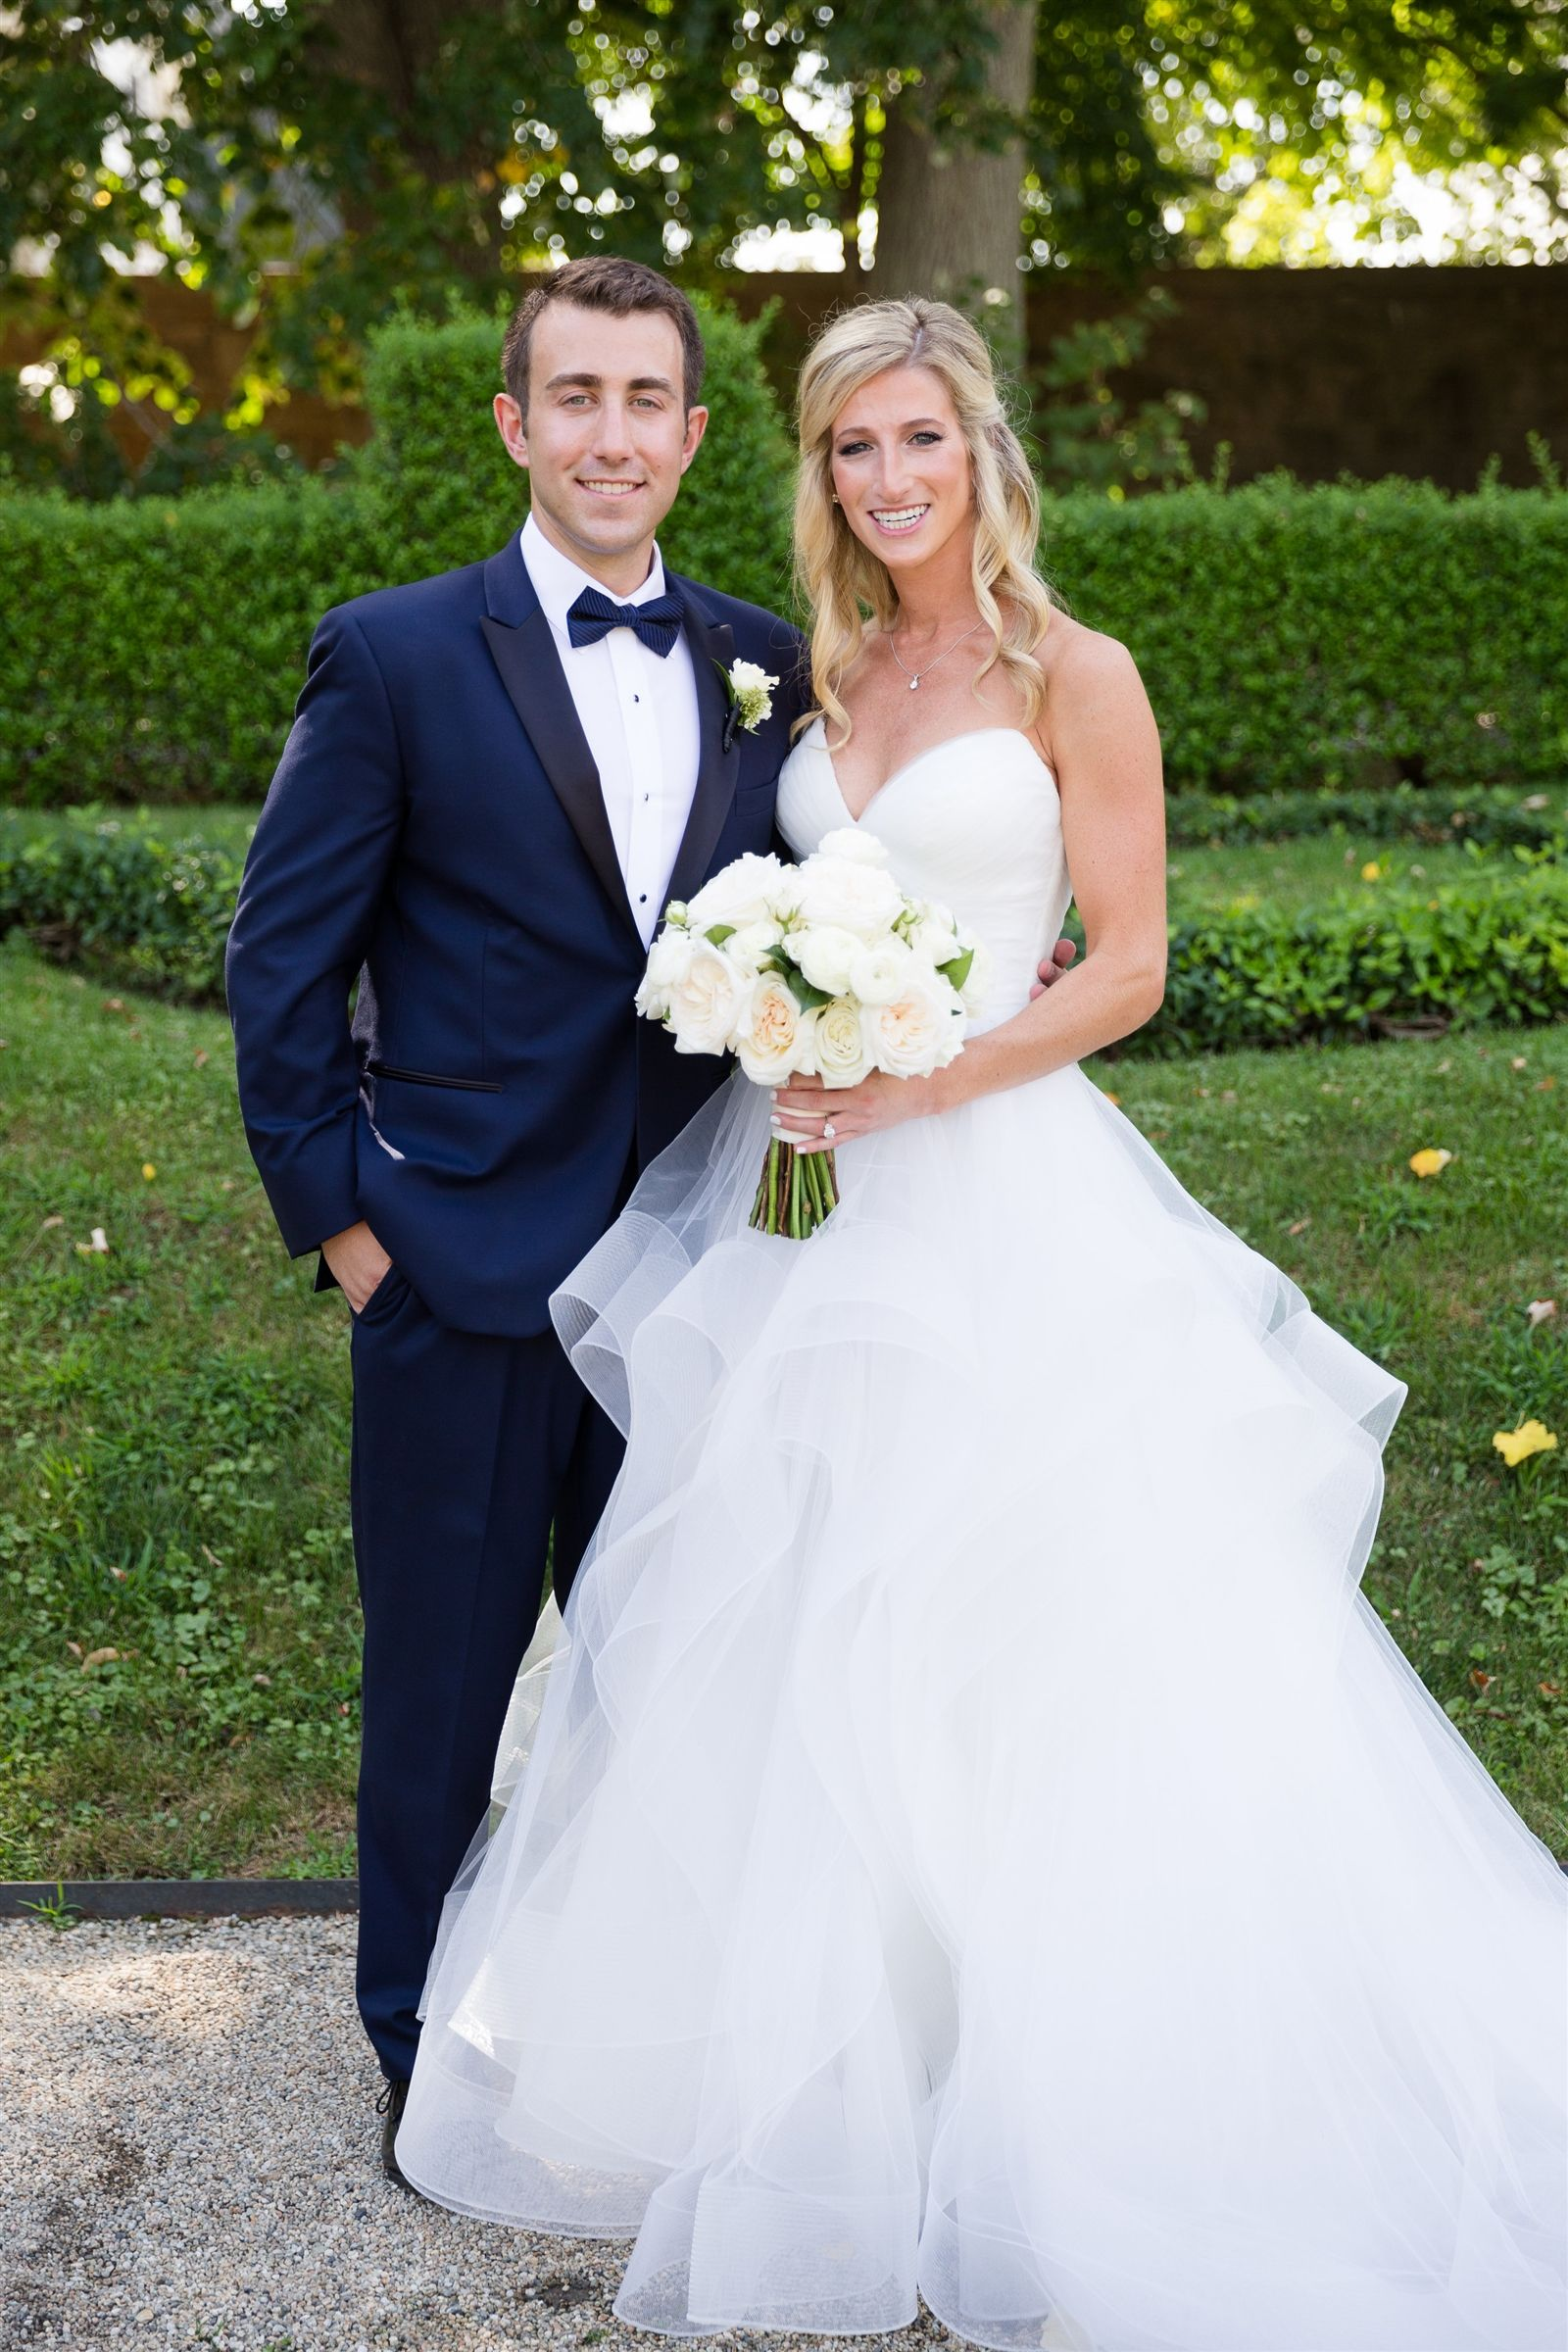 Lauren Karp '06 and her husband, Andrew, on their wedding day